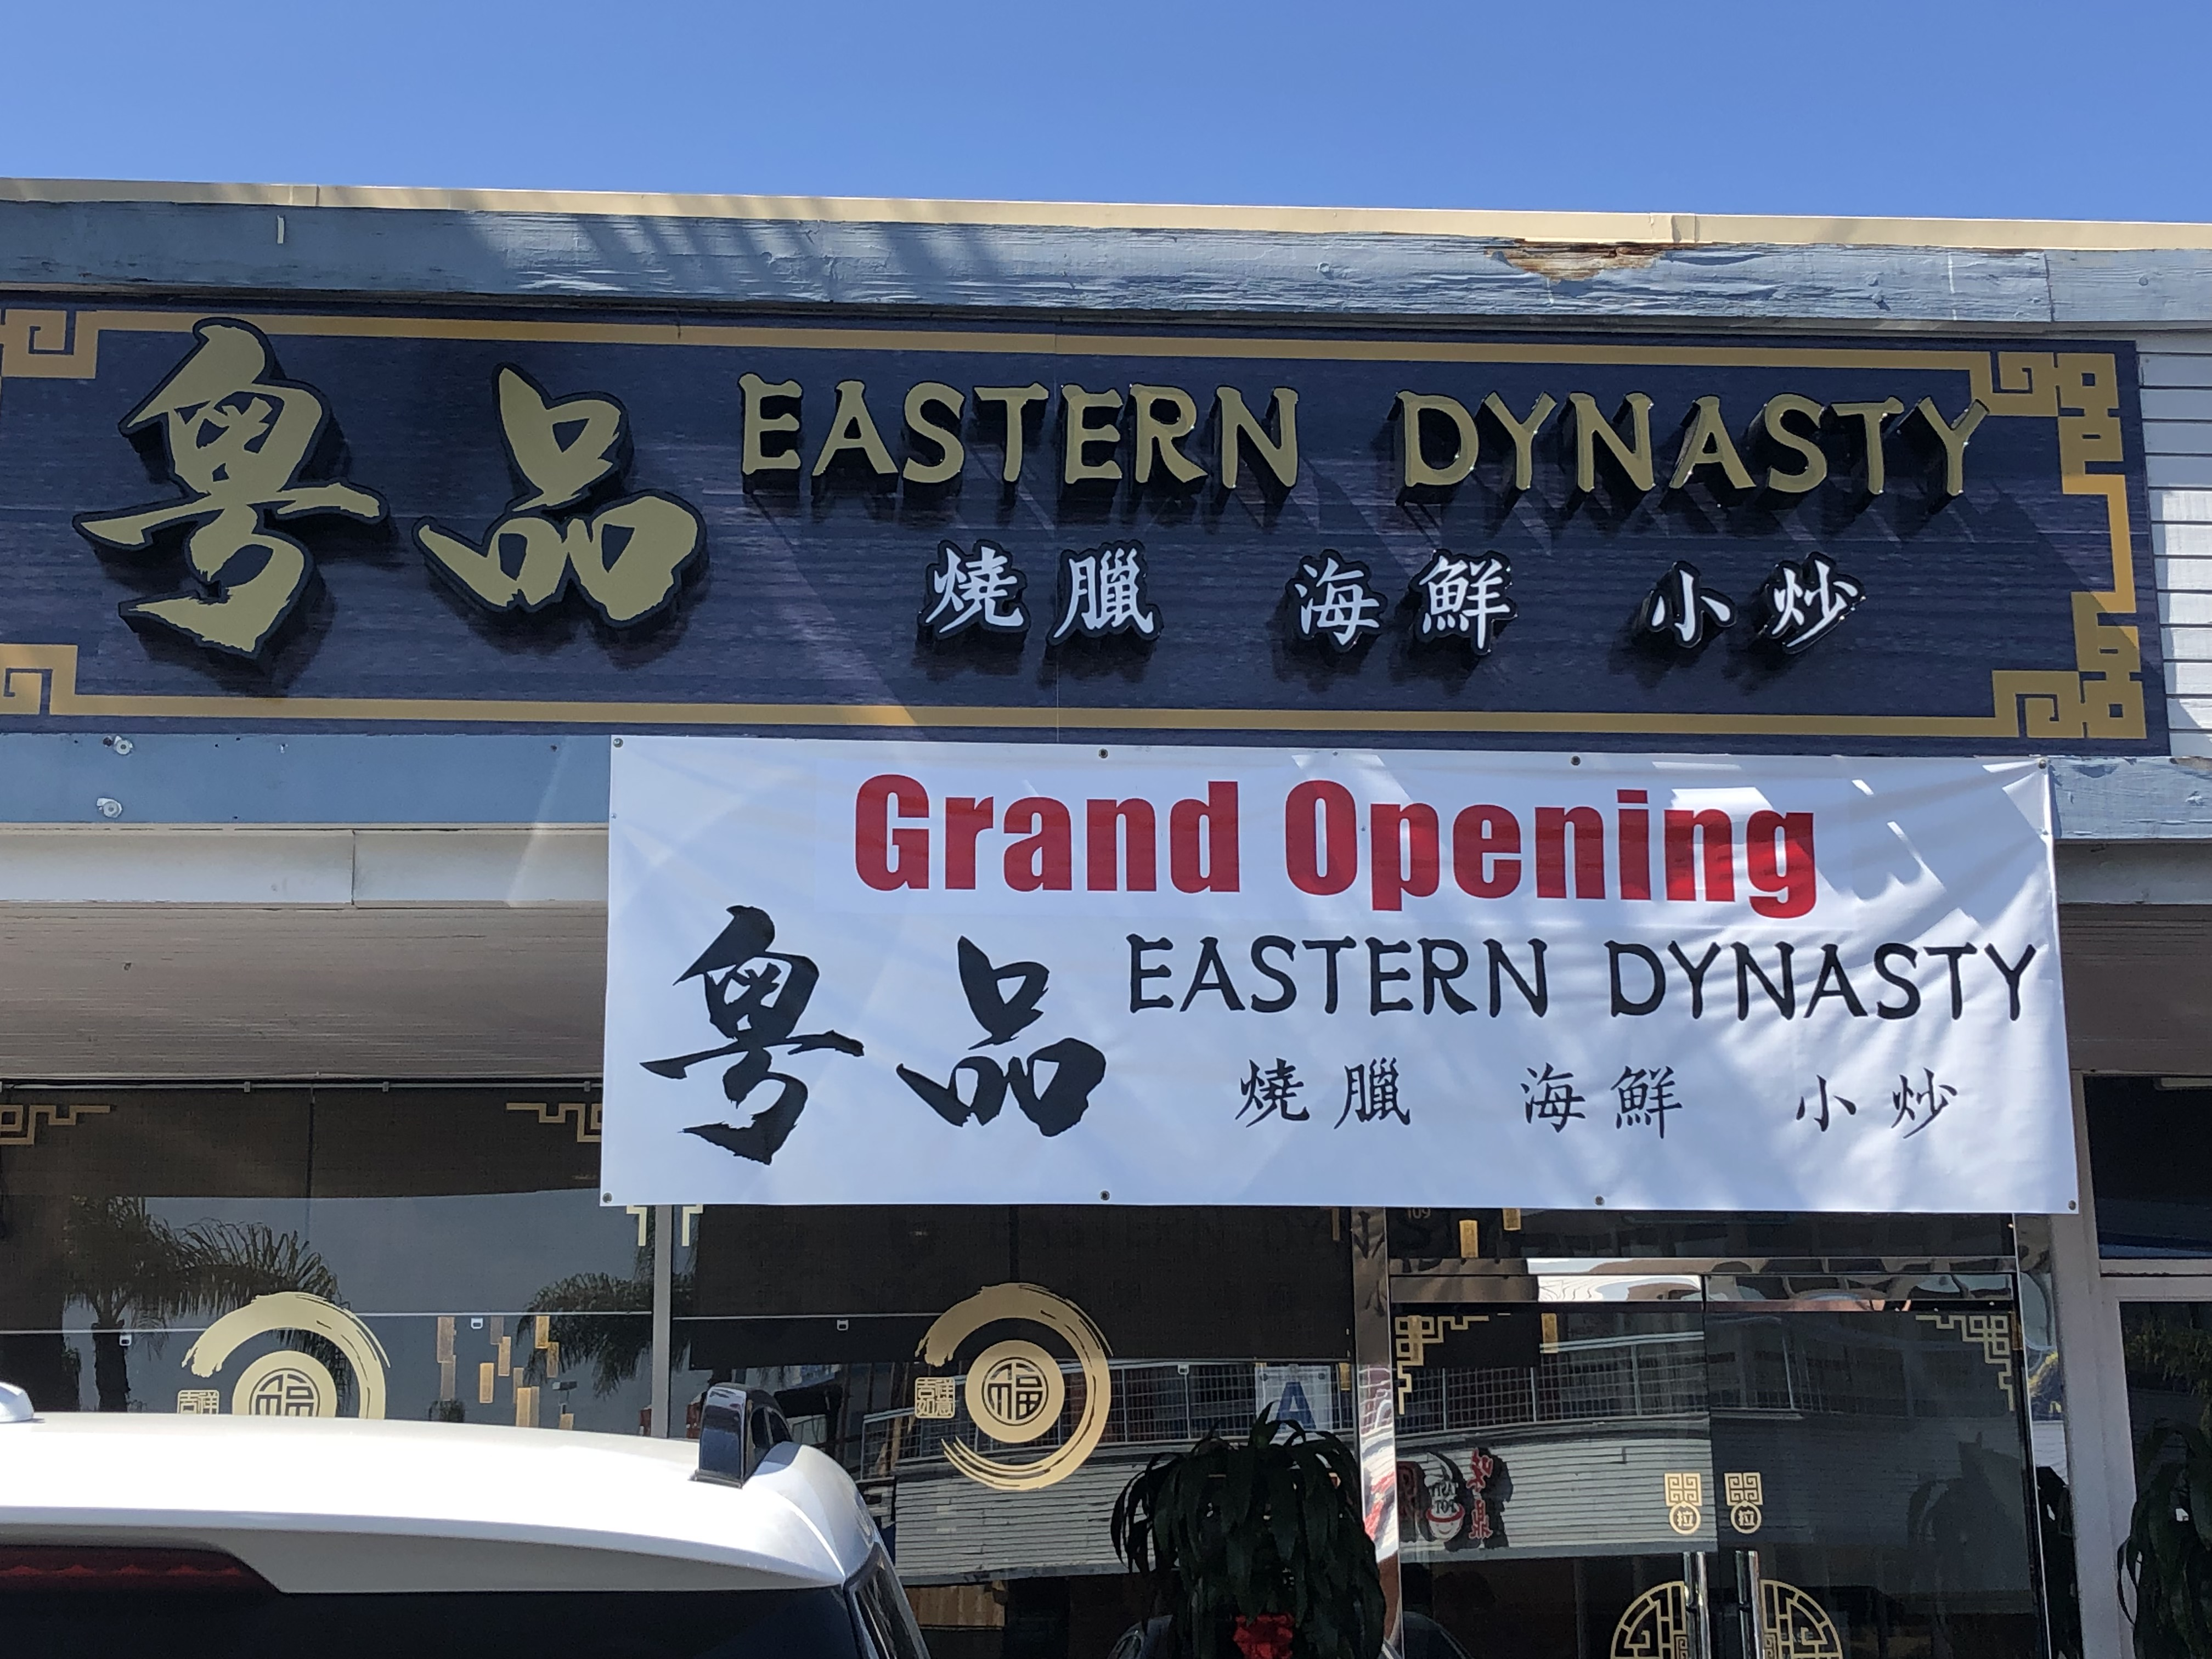 Hanging from the Eastern Dynasty storefront is a sign indicating its grand opening.